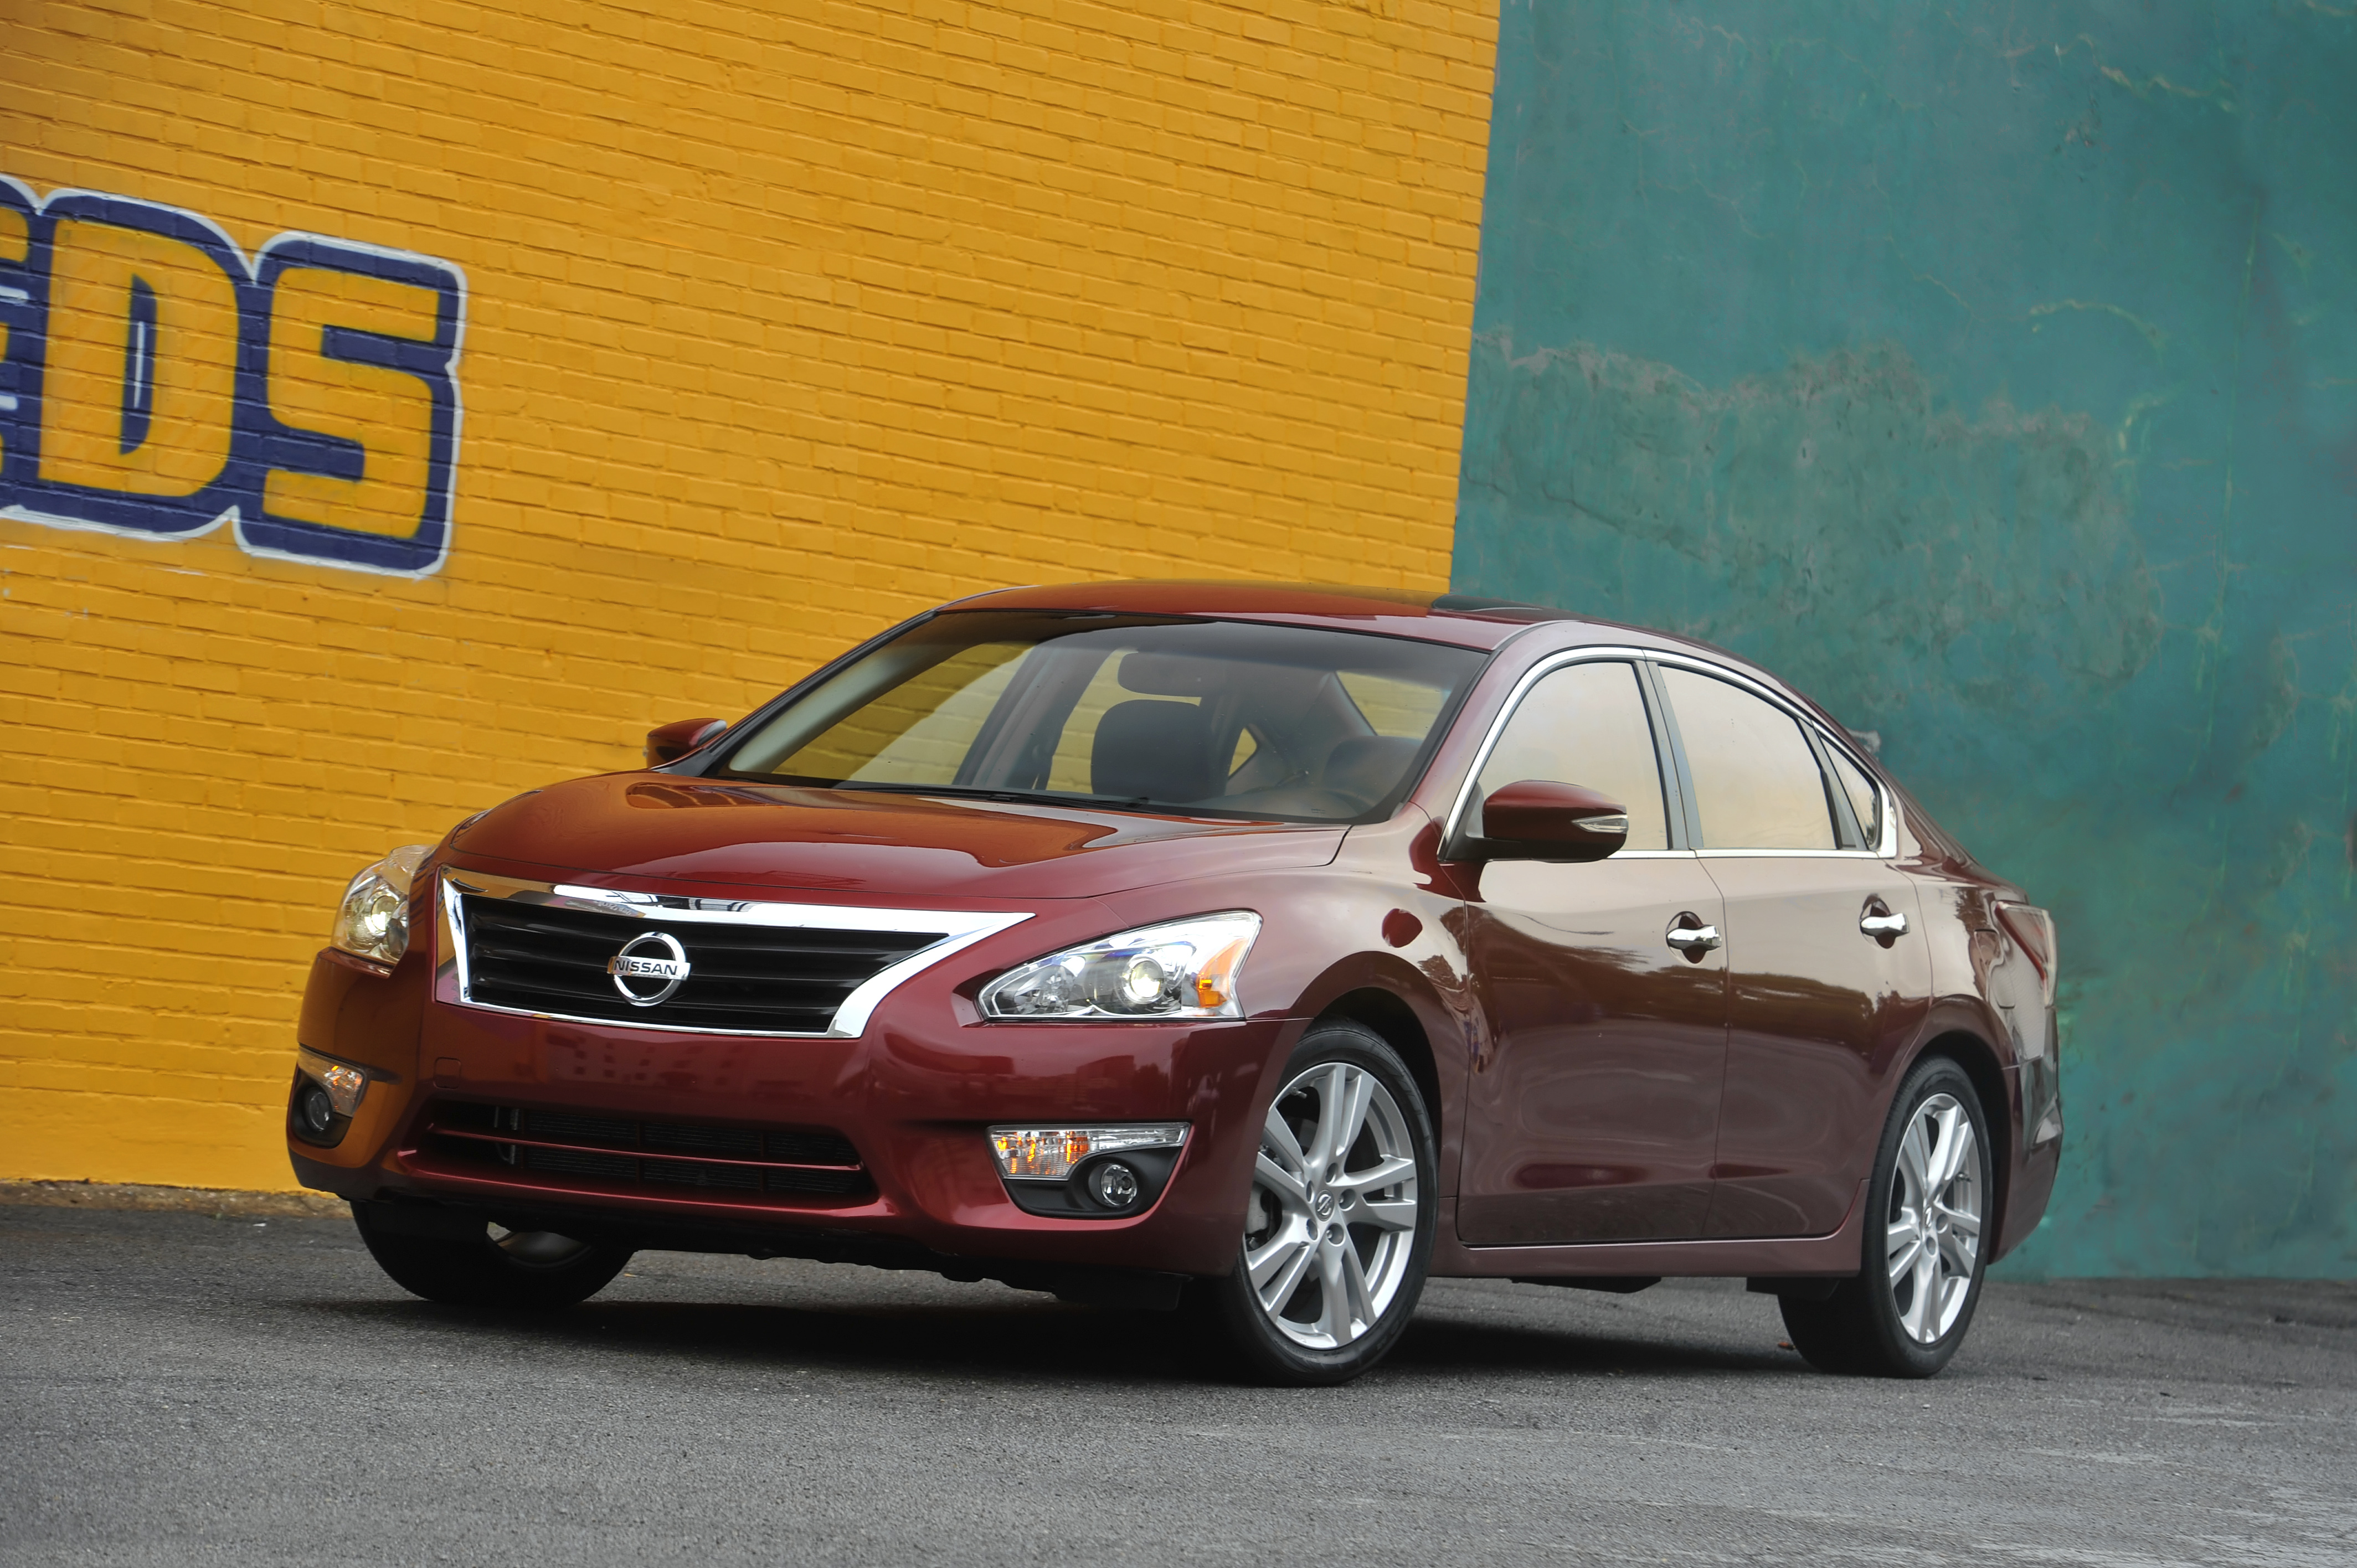 2013 Nissan Altima Front 3/4 picture